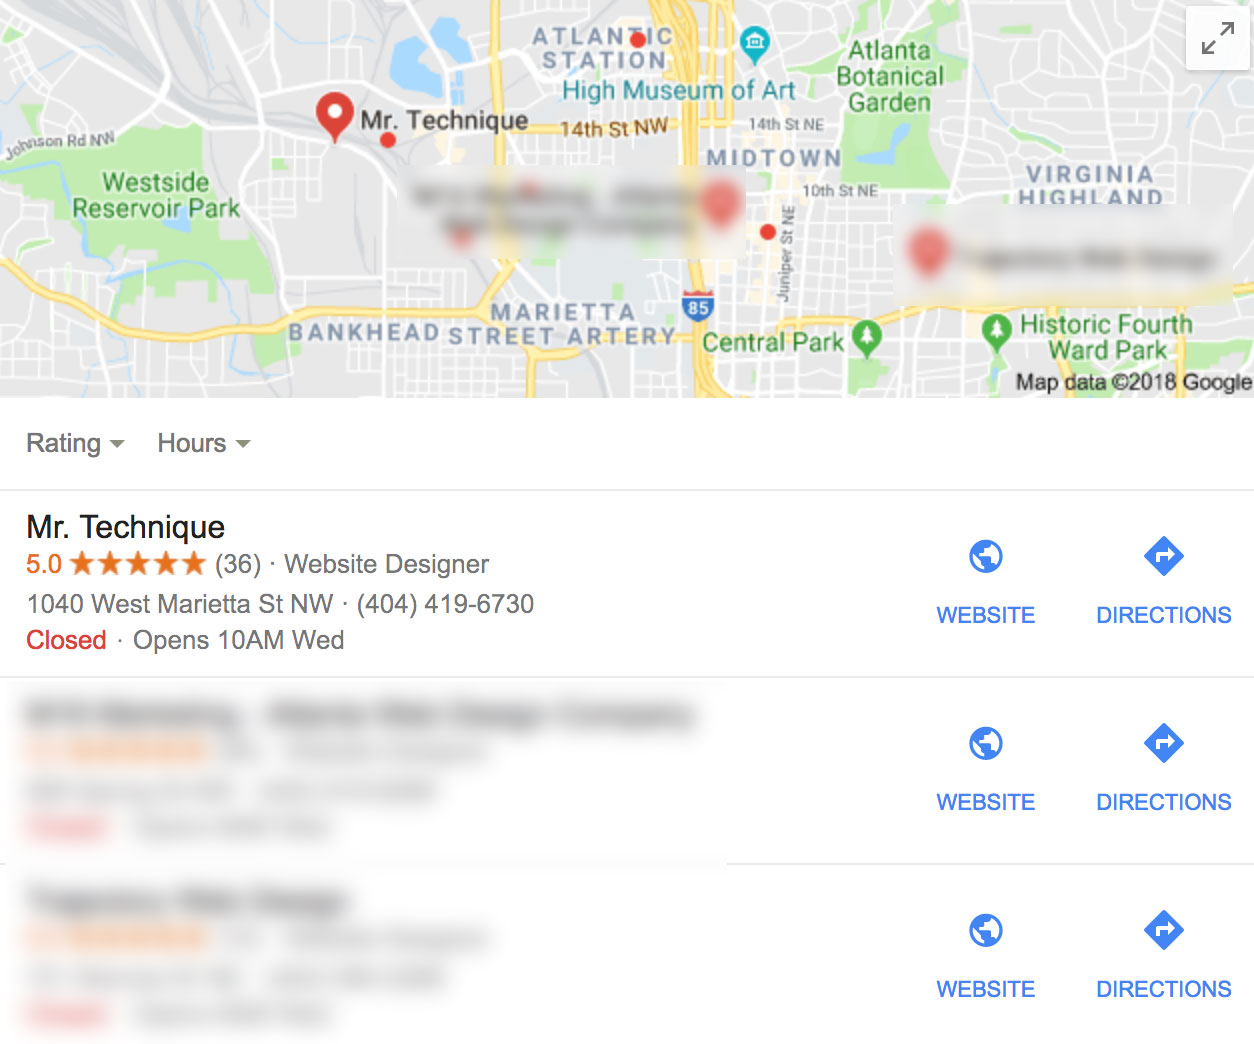 Google Desktop Local Search Results from the Mr. Technique Office